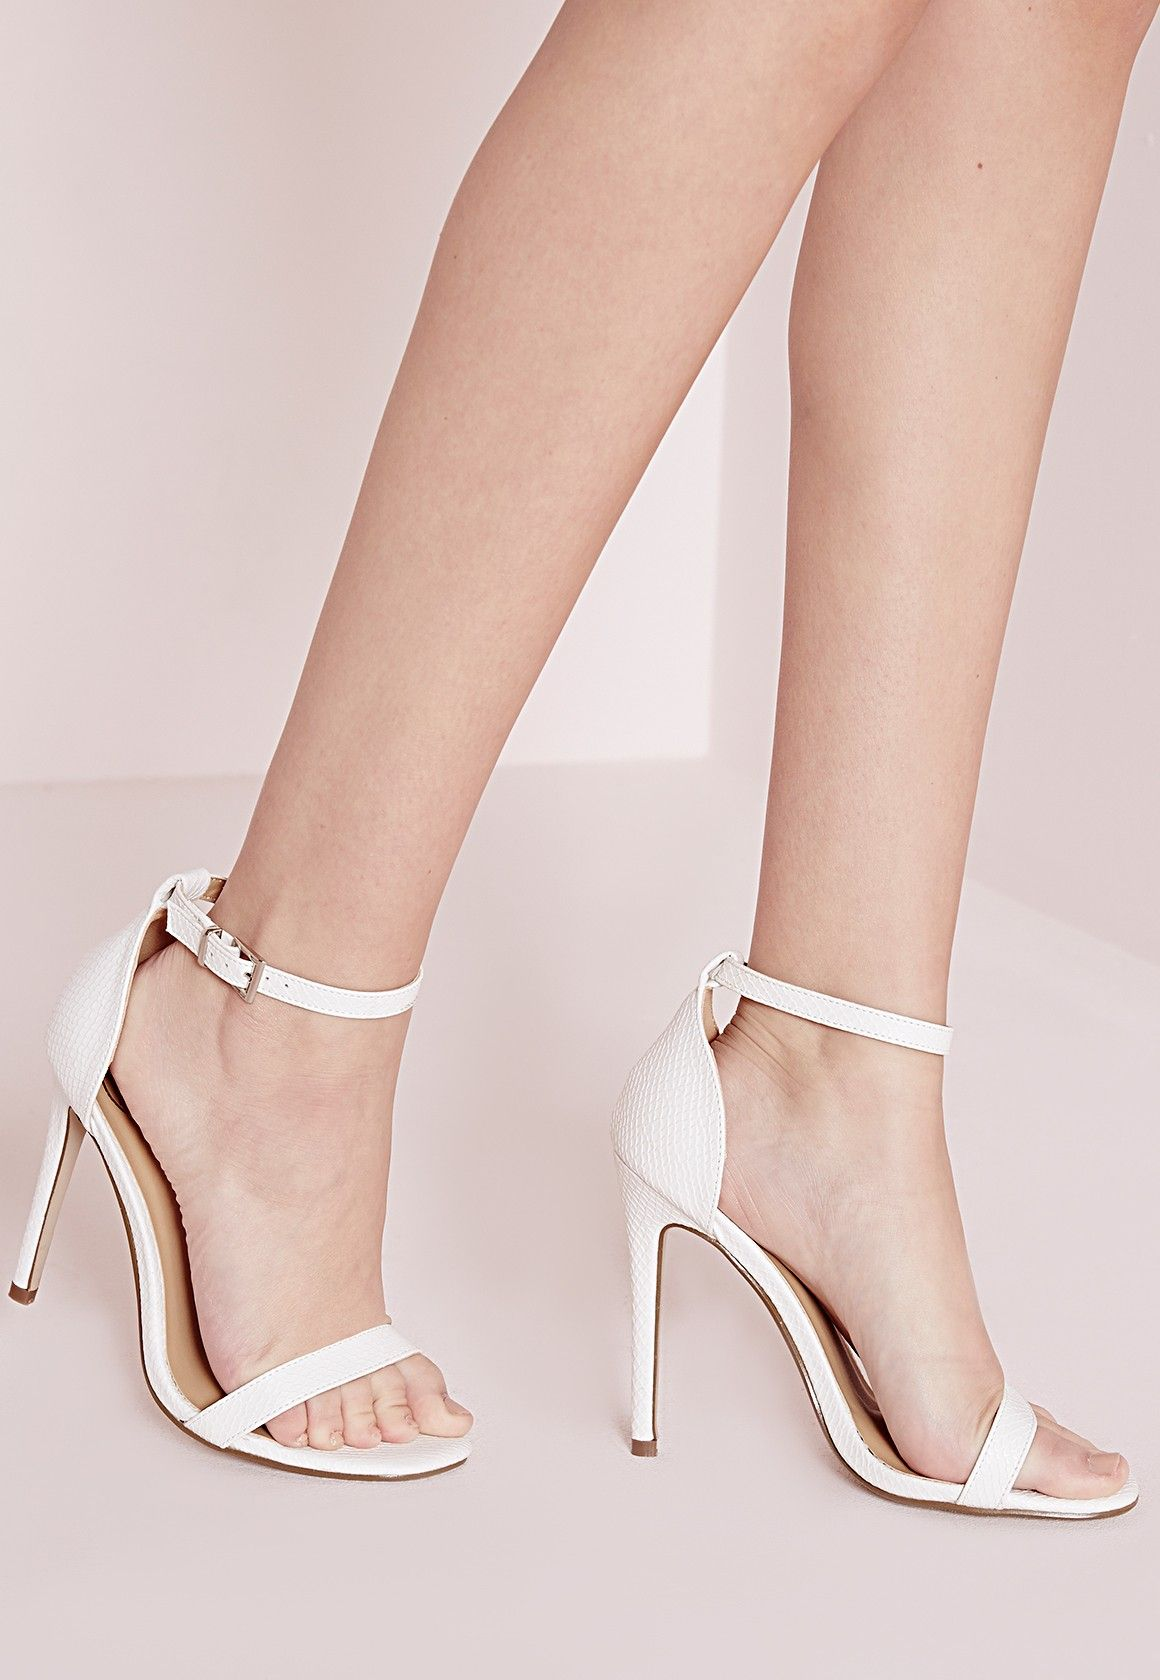 3f76104dc7acc Missguided - Barely There Strappy Heeled Sandals White Croc 42.50 ...